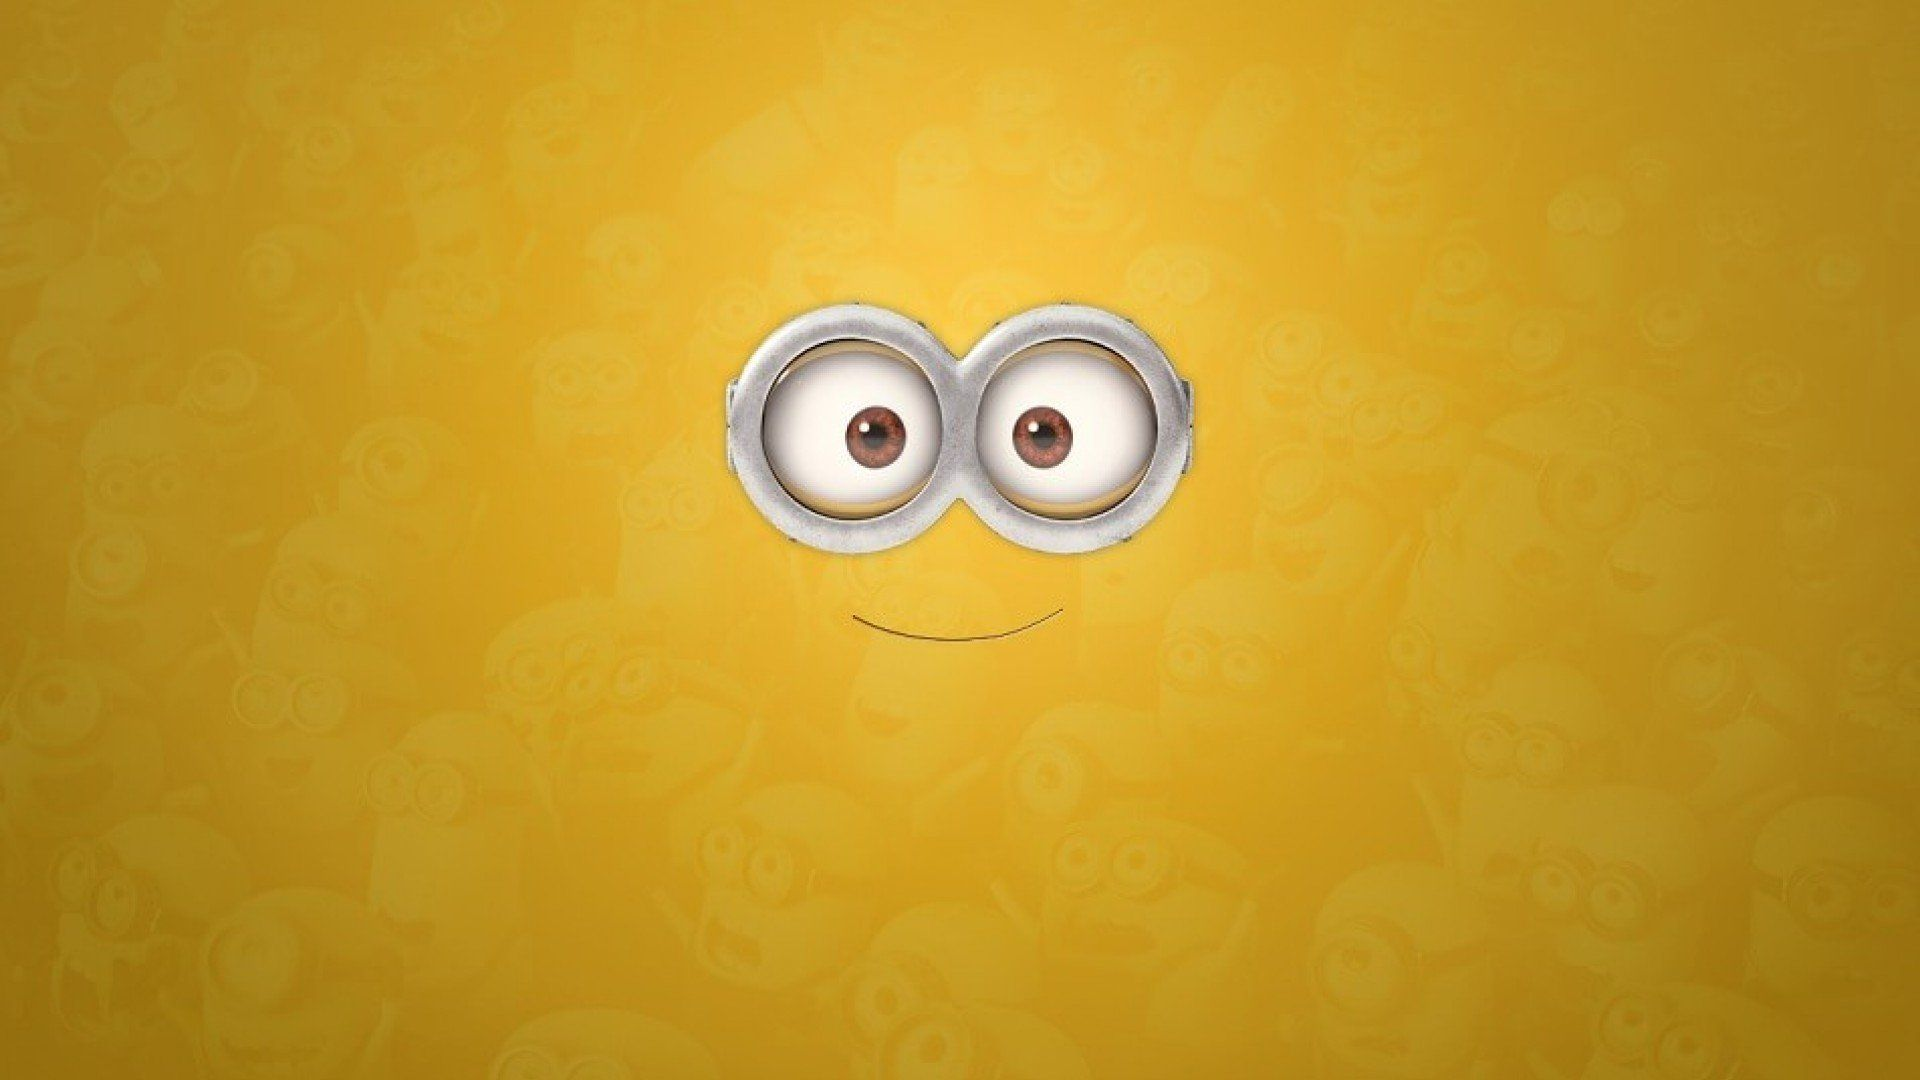 The Wallpapers Hd Minions